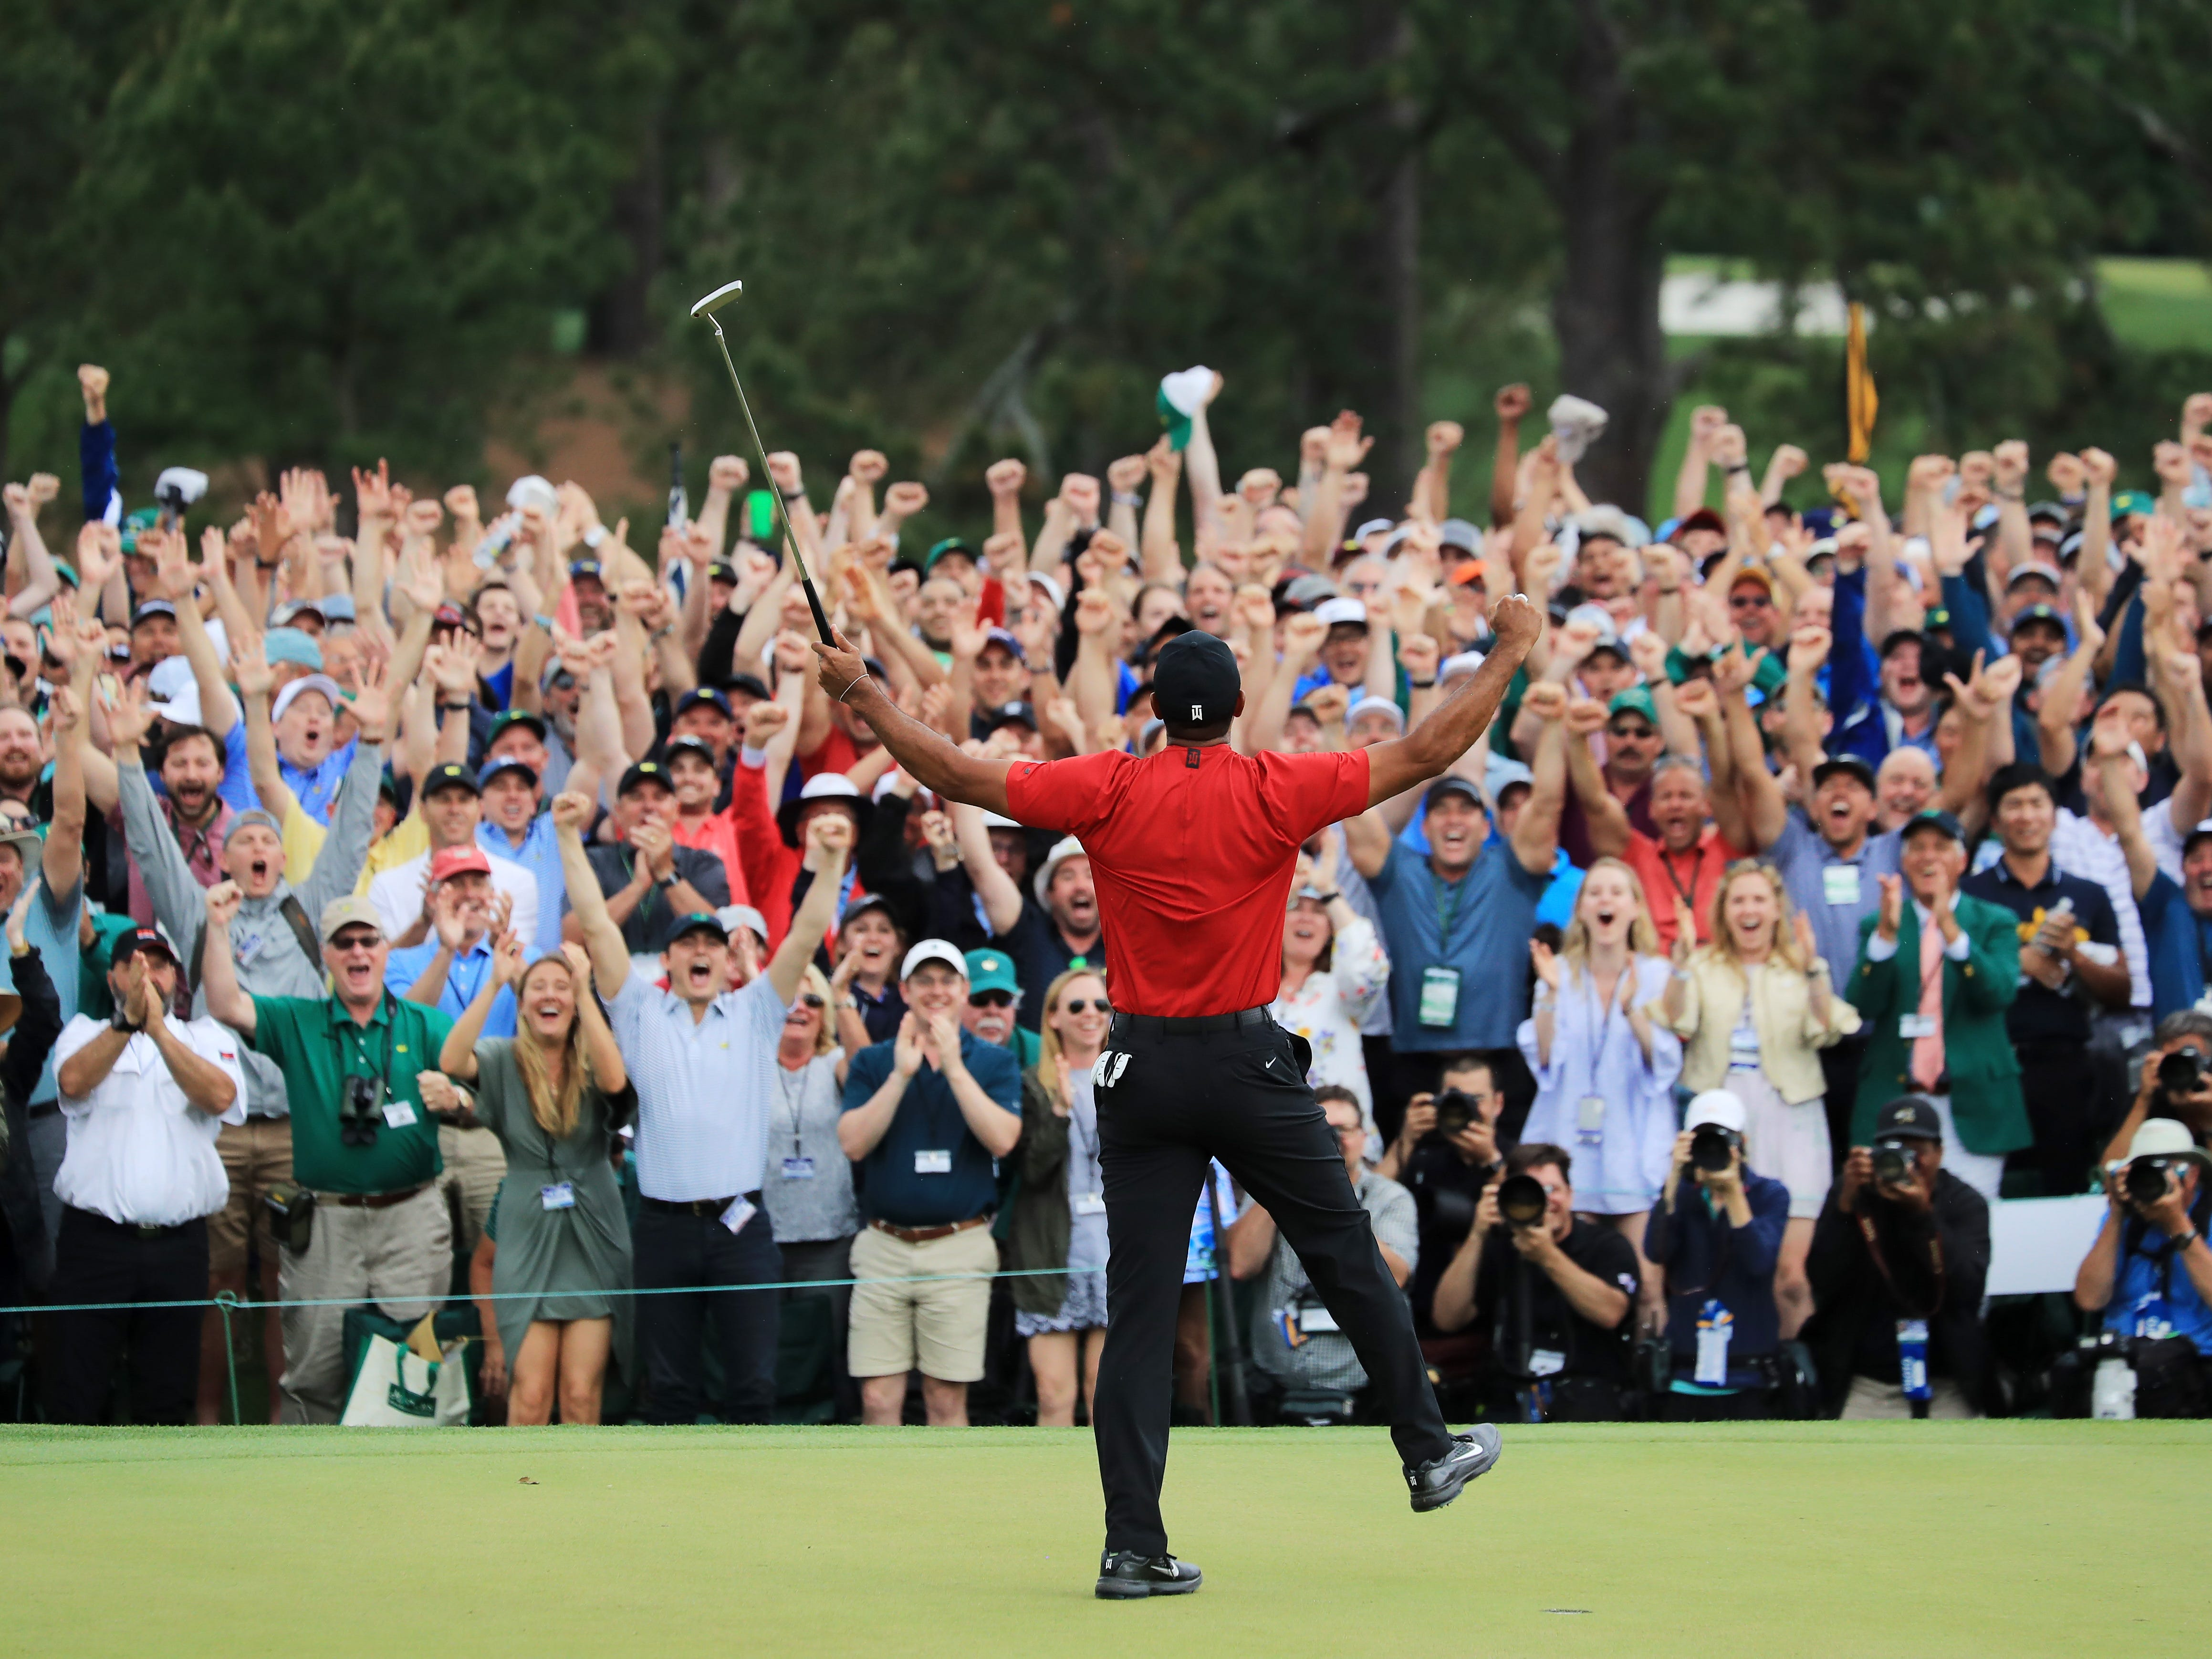 Patrons cheer as Tiger Woods of the United States celebrates after sinking his putt on the 18th green.